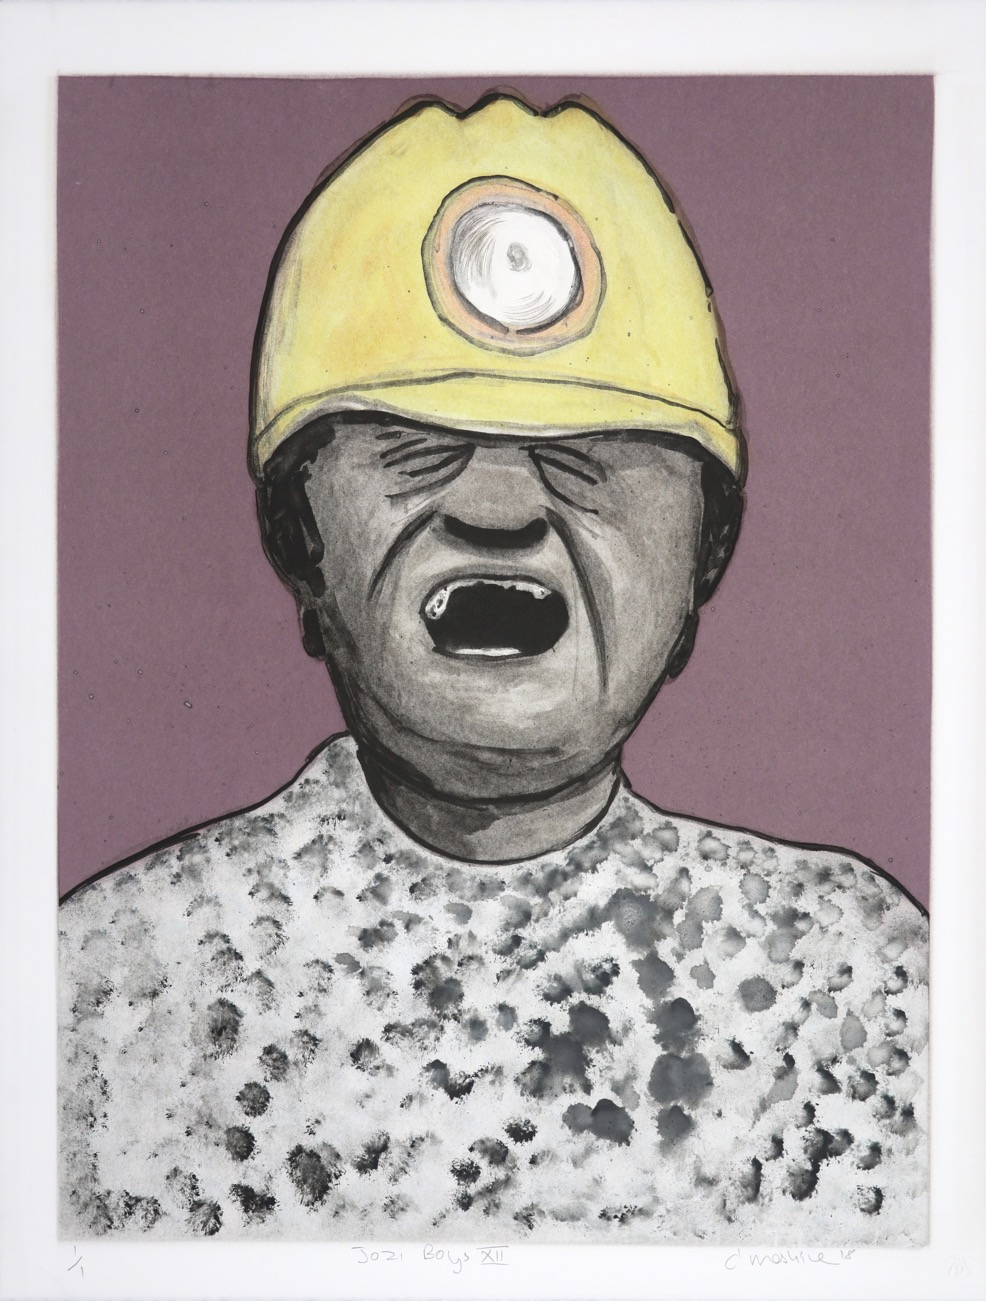 Head and shoulders portrait of a shouting man wearing a mining helmet.